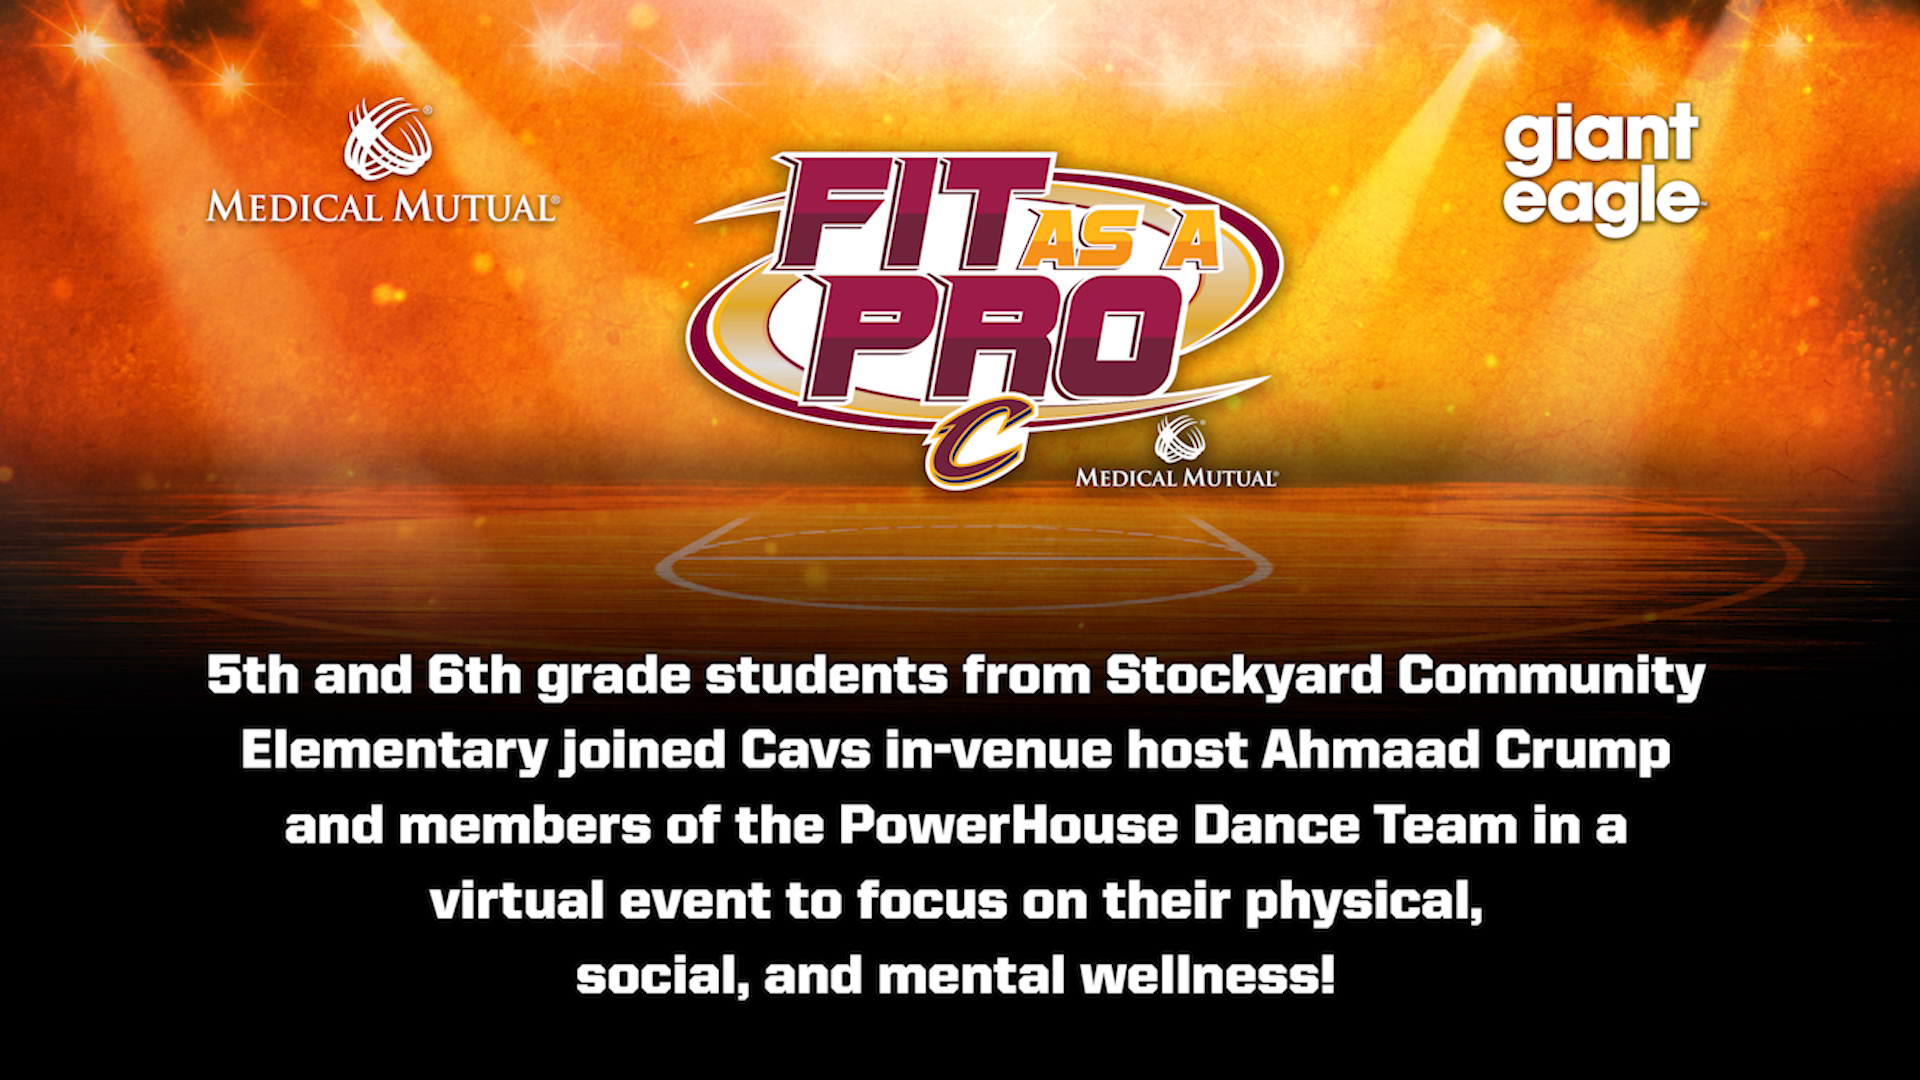 May Fit as a Pro: Stockyard Community Elementary